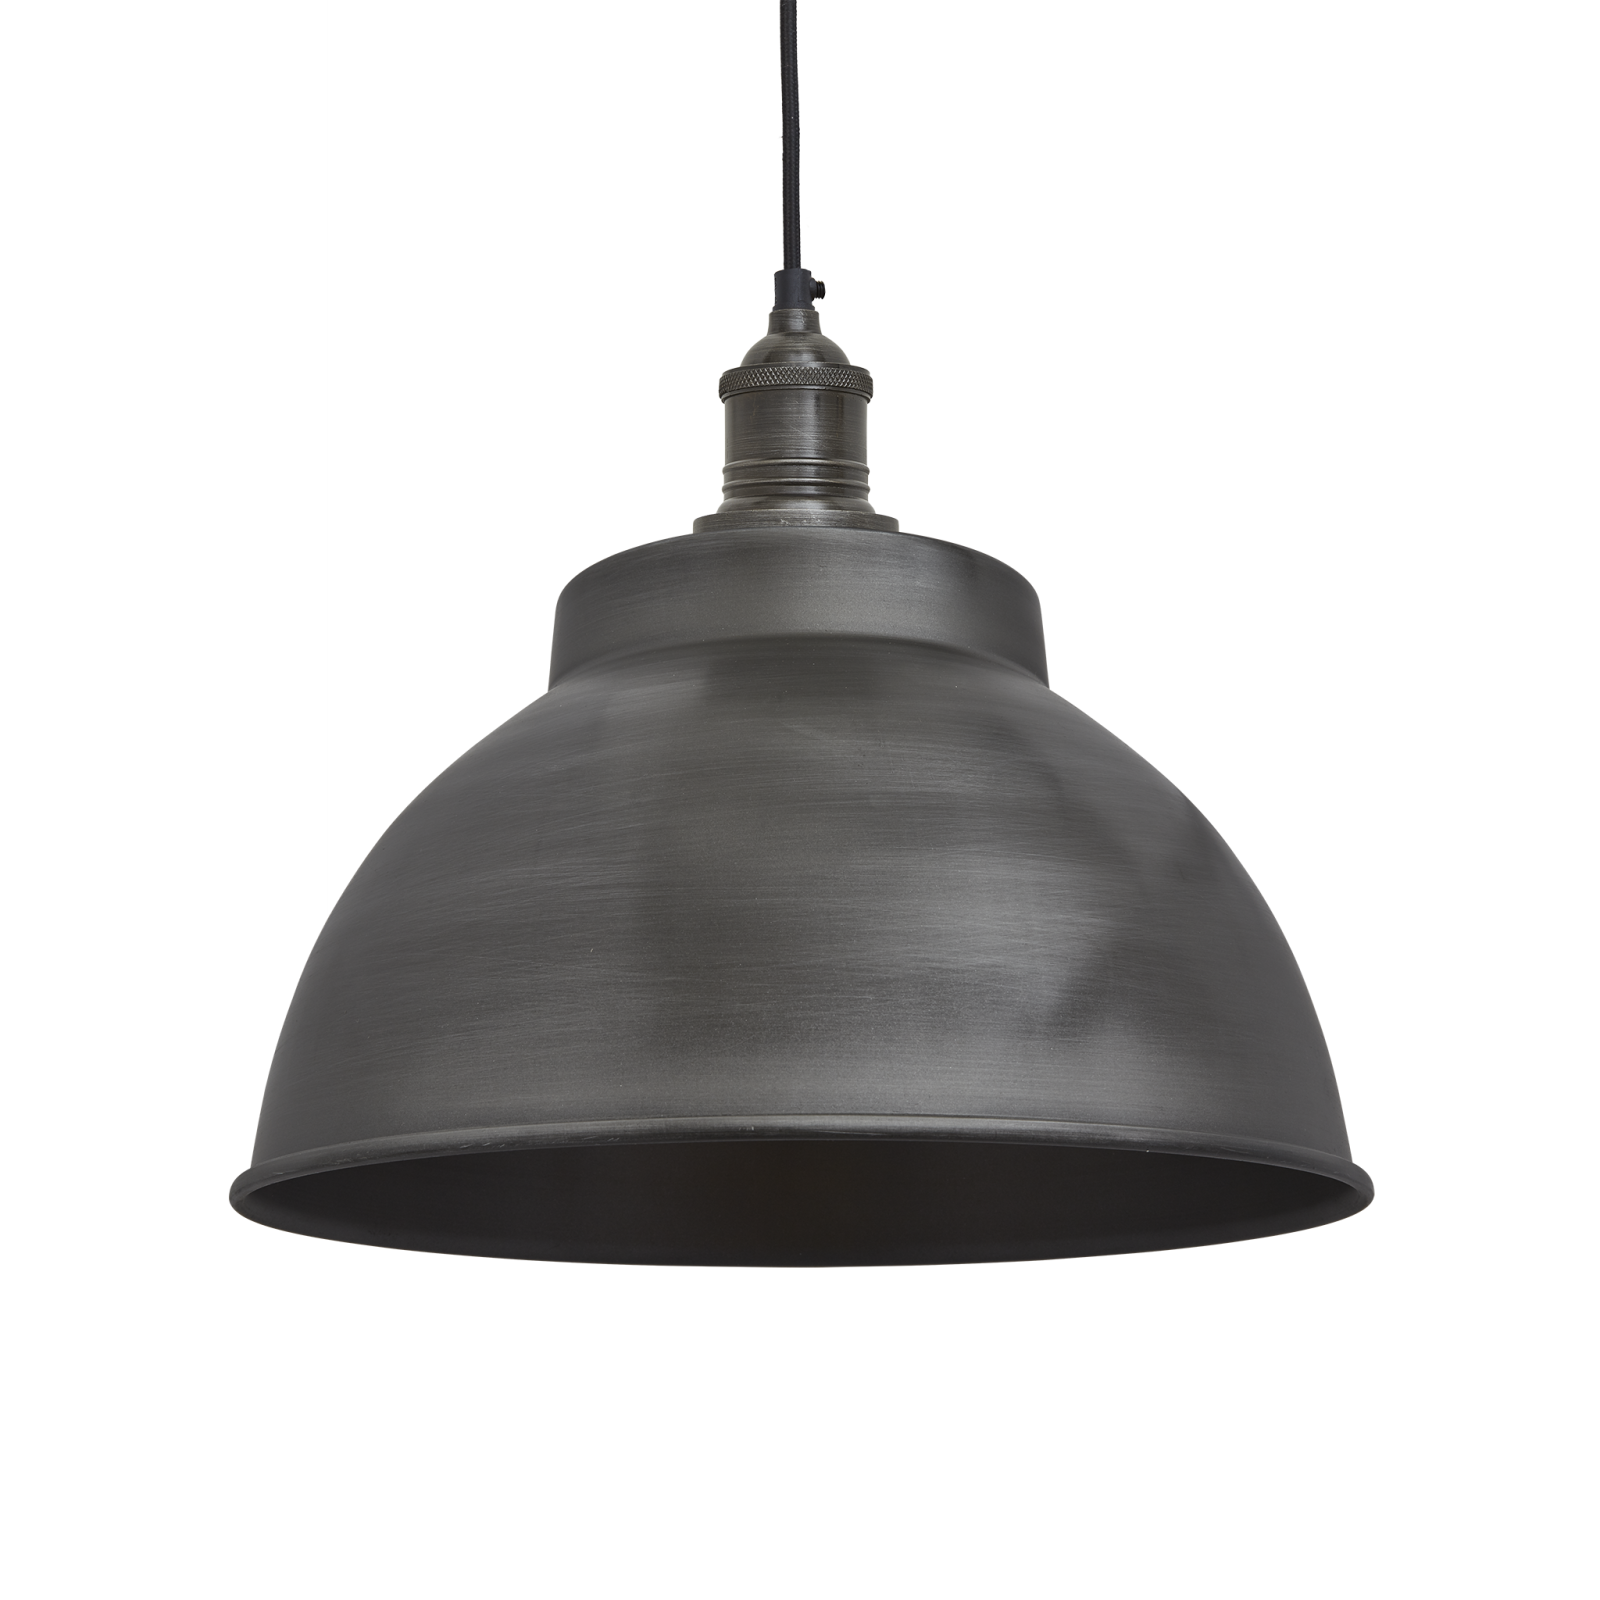 Brooklyn Dome Pendant Light - 13 Inch Brooklyn Dome Pendant - 13 Inch - Pewter - Pewter Holder